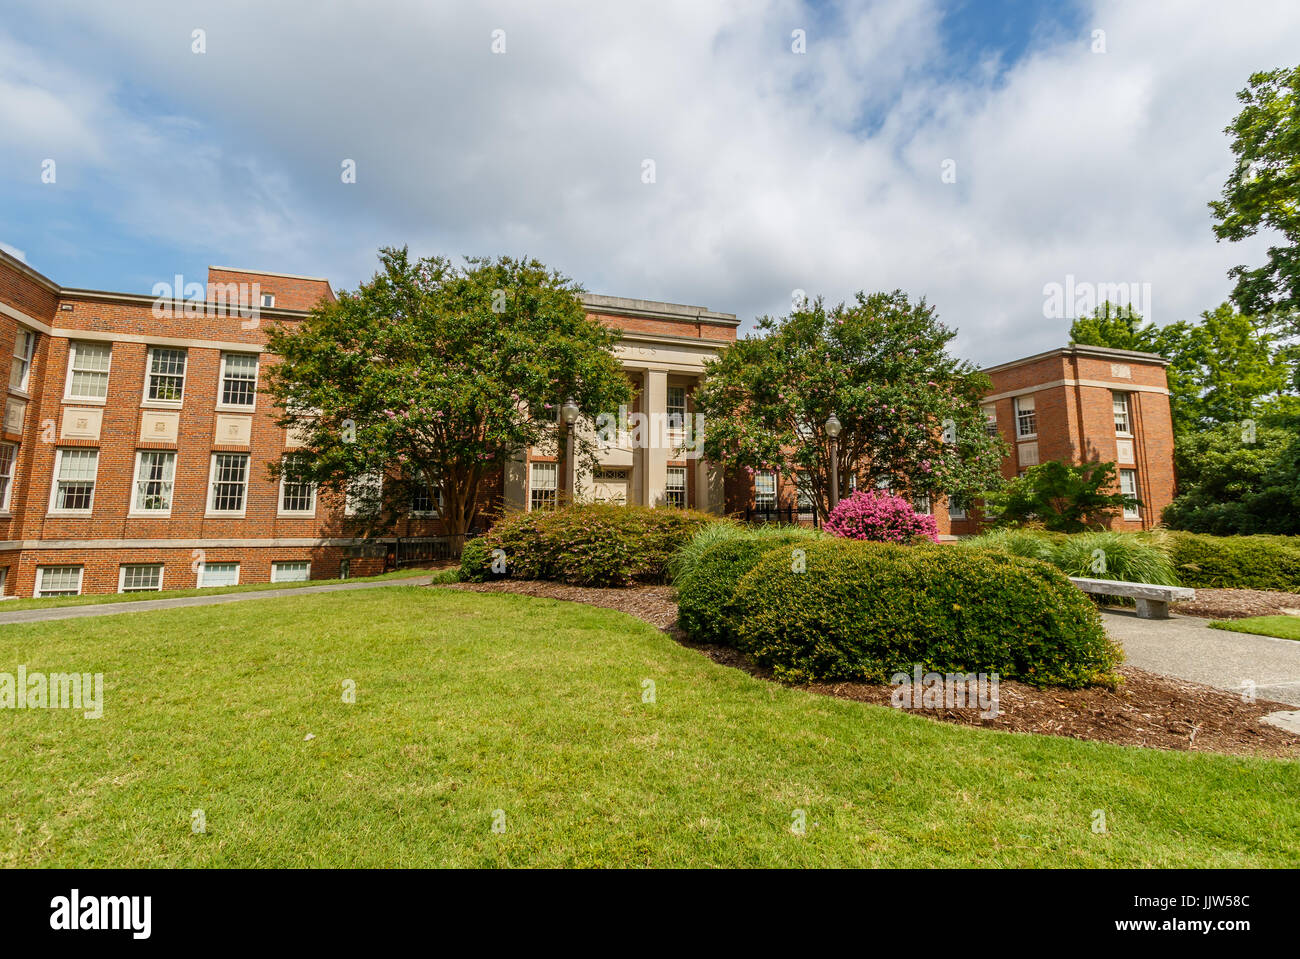 Physics Building on June 18, 2017 at Duke University in Durham, North Carolina. - Stock Image